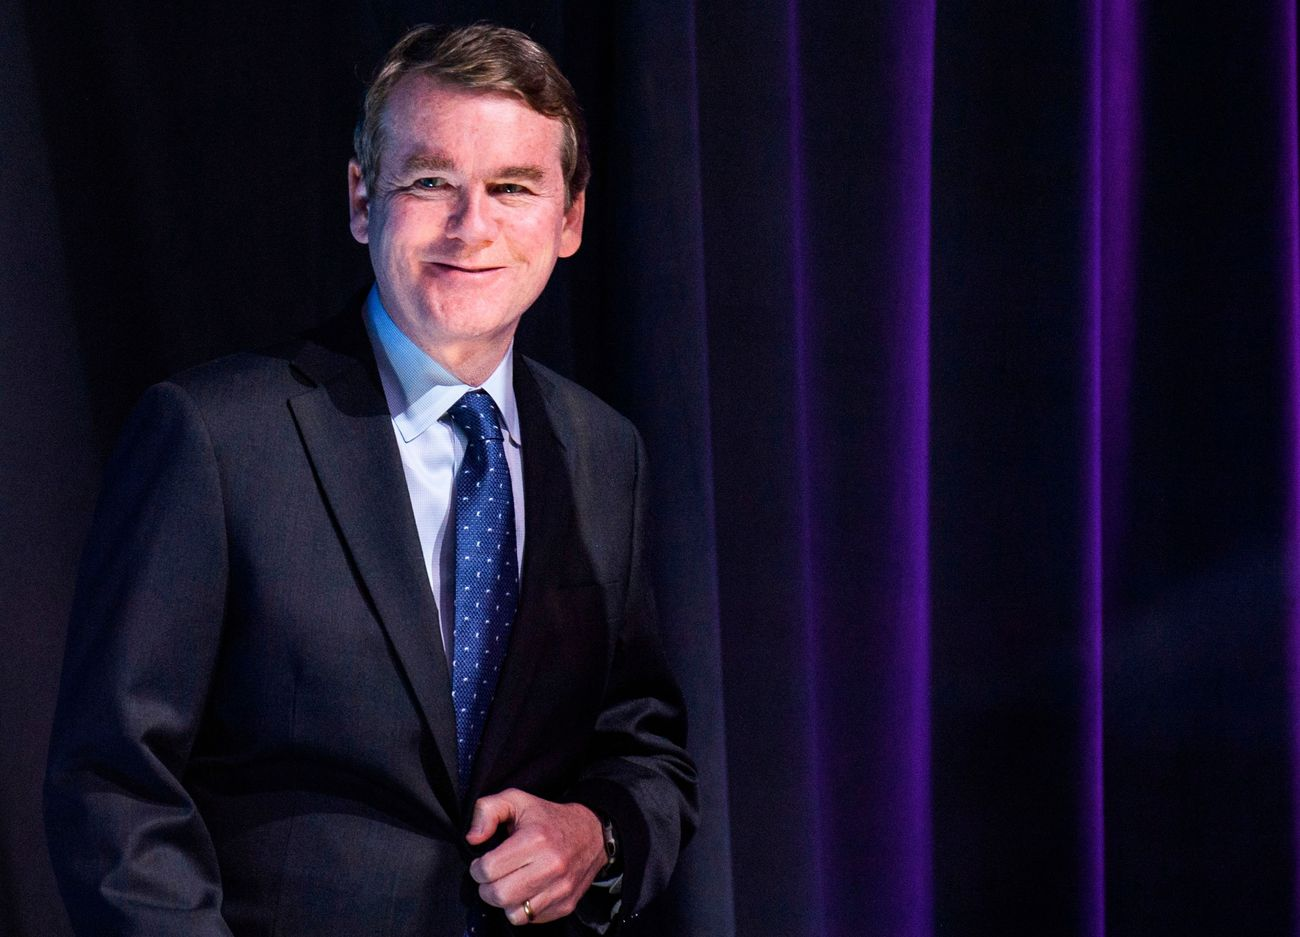 Presidential Candidate Bennet To J Street: My Mother Was Jewish, But I'm Not